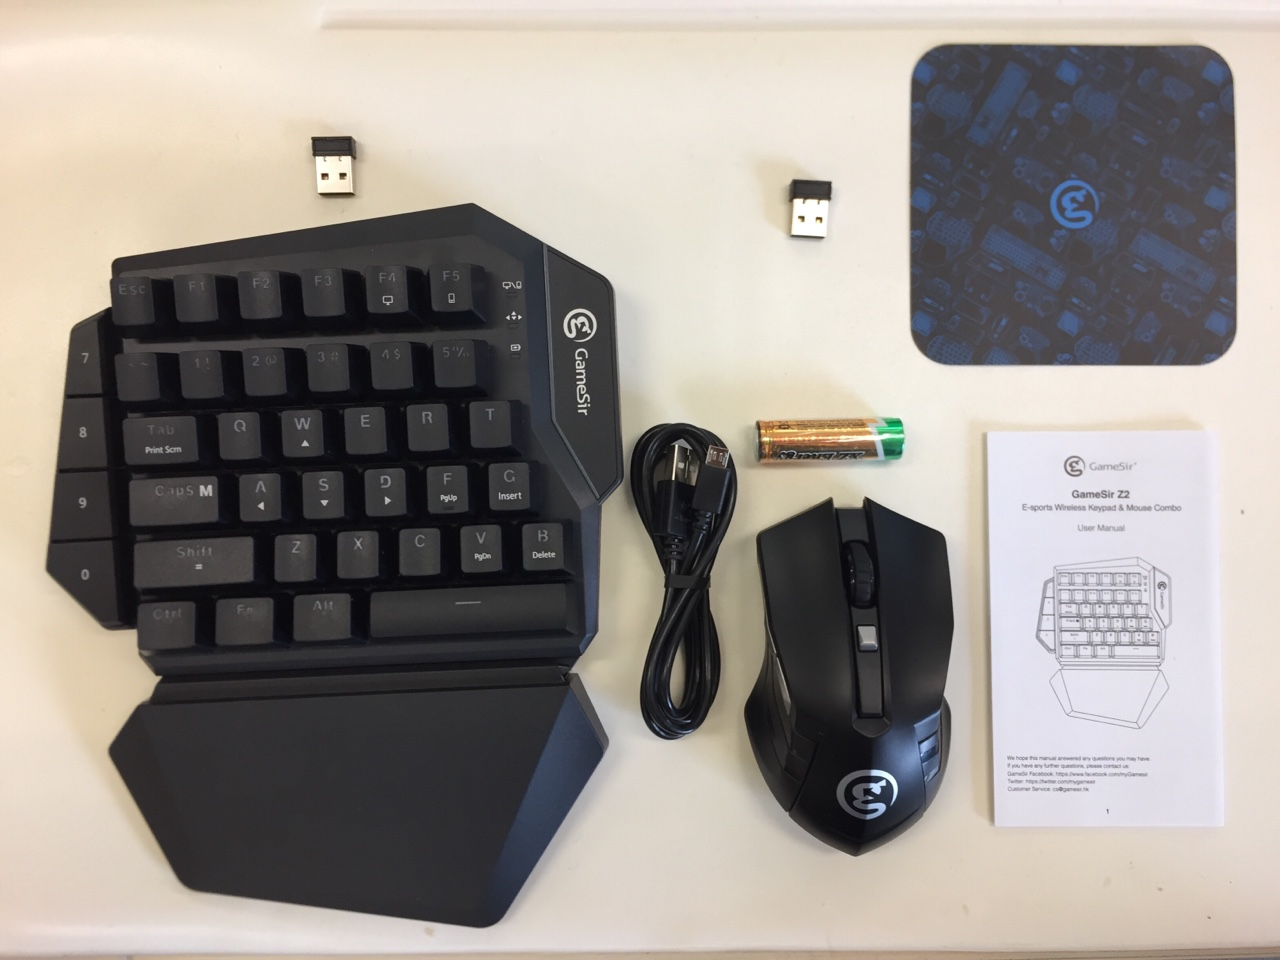 GameSir Z2 E-sports Gaming Wireless Keypad Mouse Combo 2 4GHz One-handed  Blue Switch Keyboard For FPS Games - Black